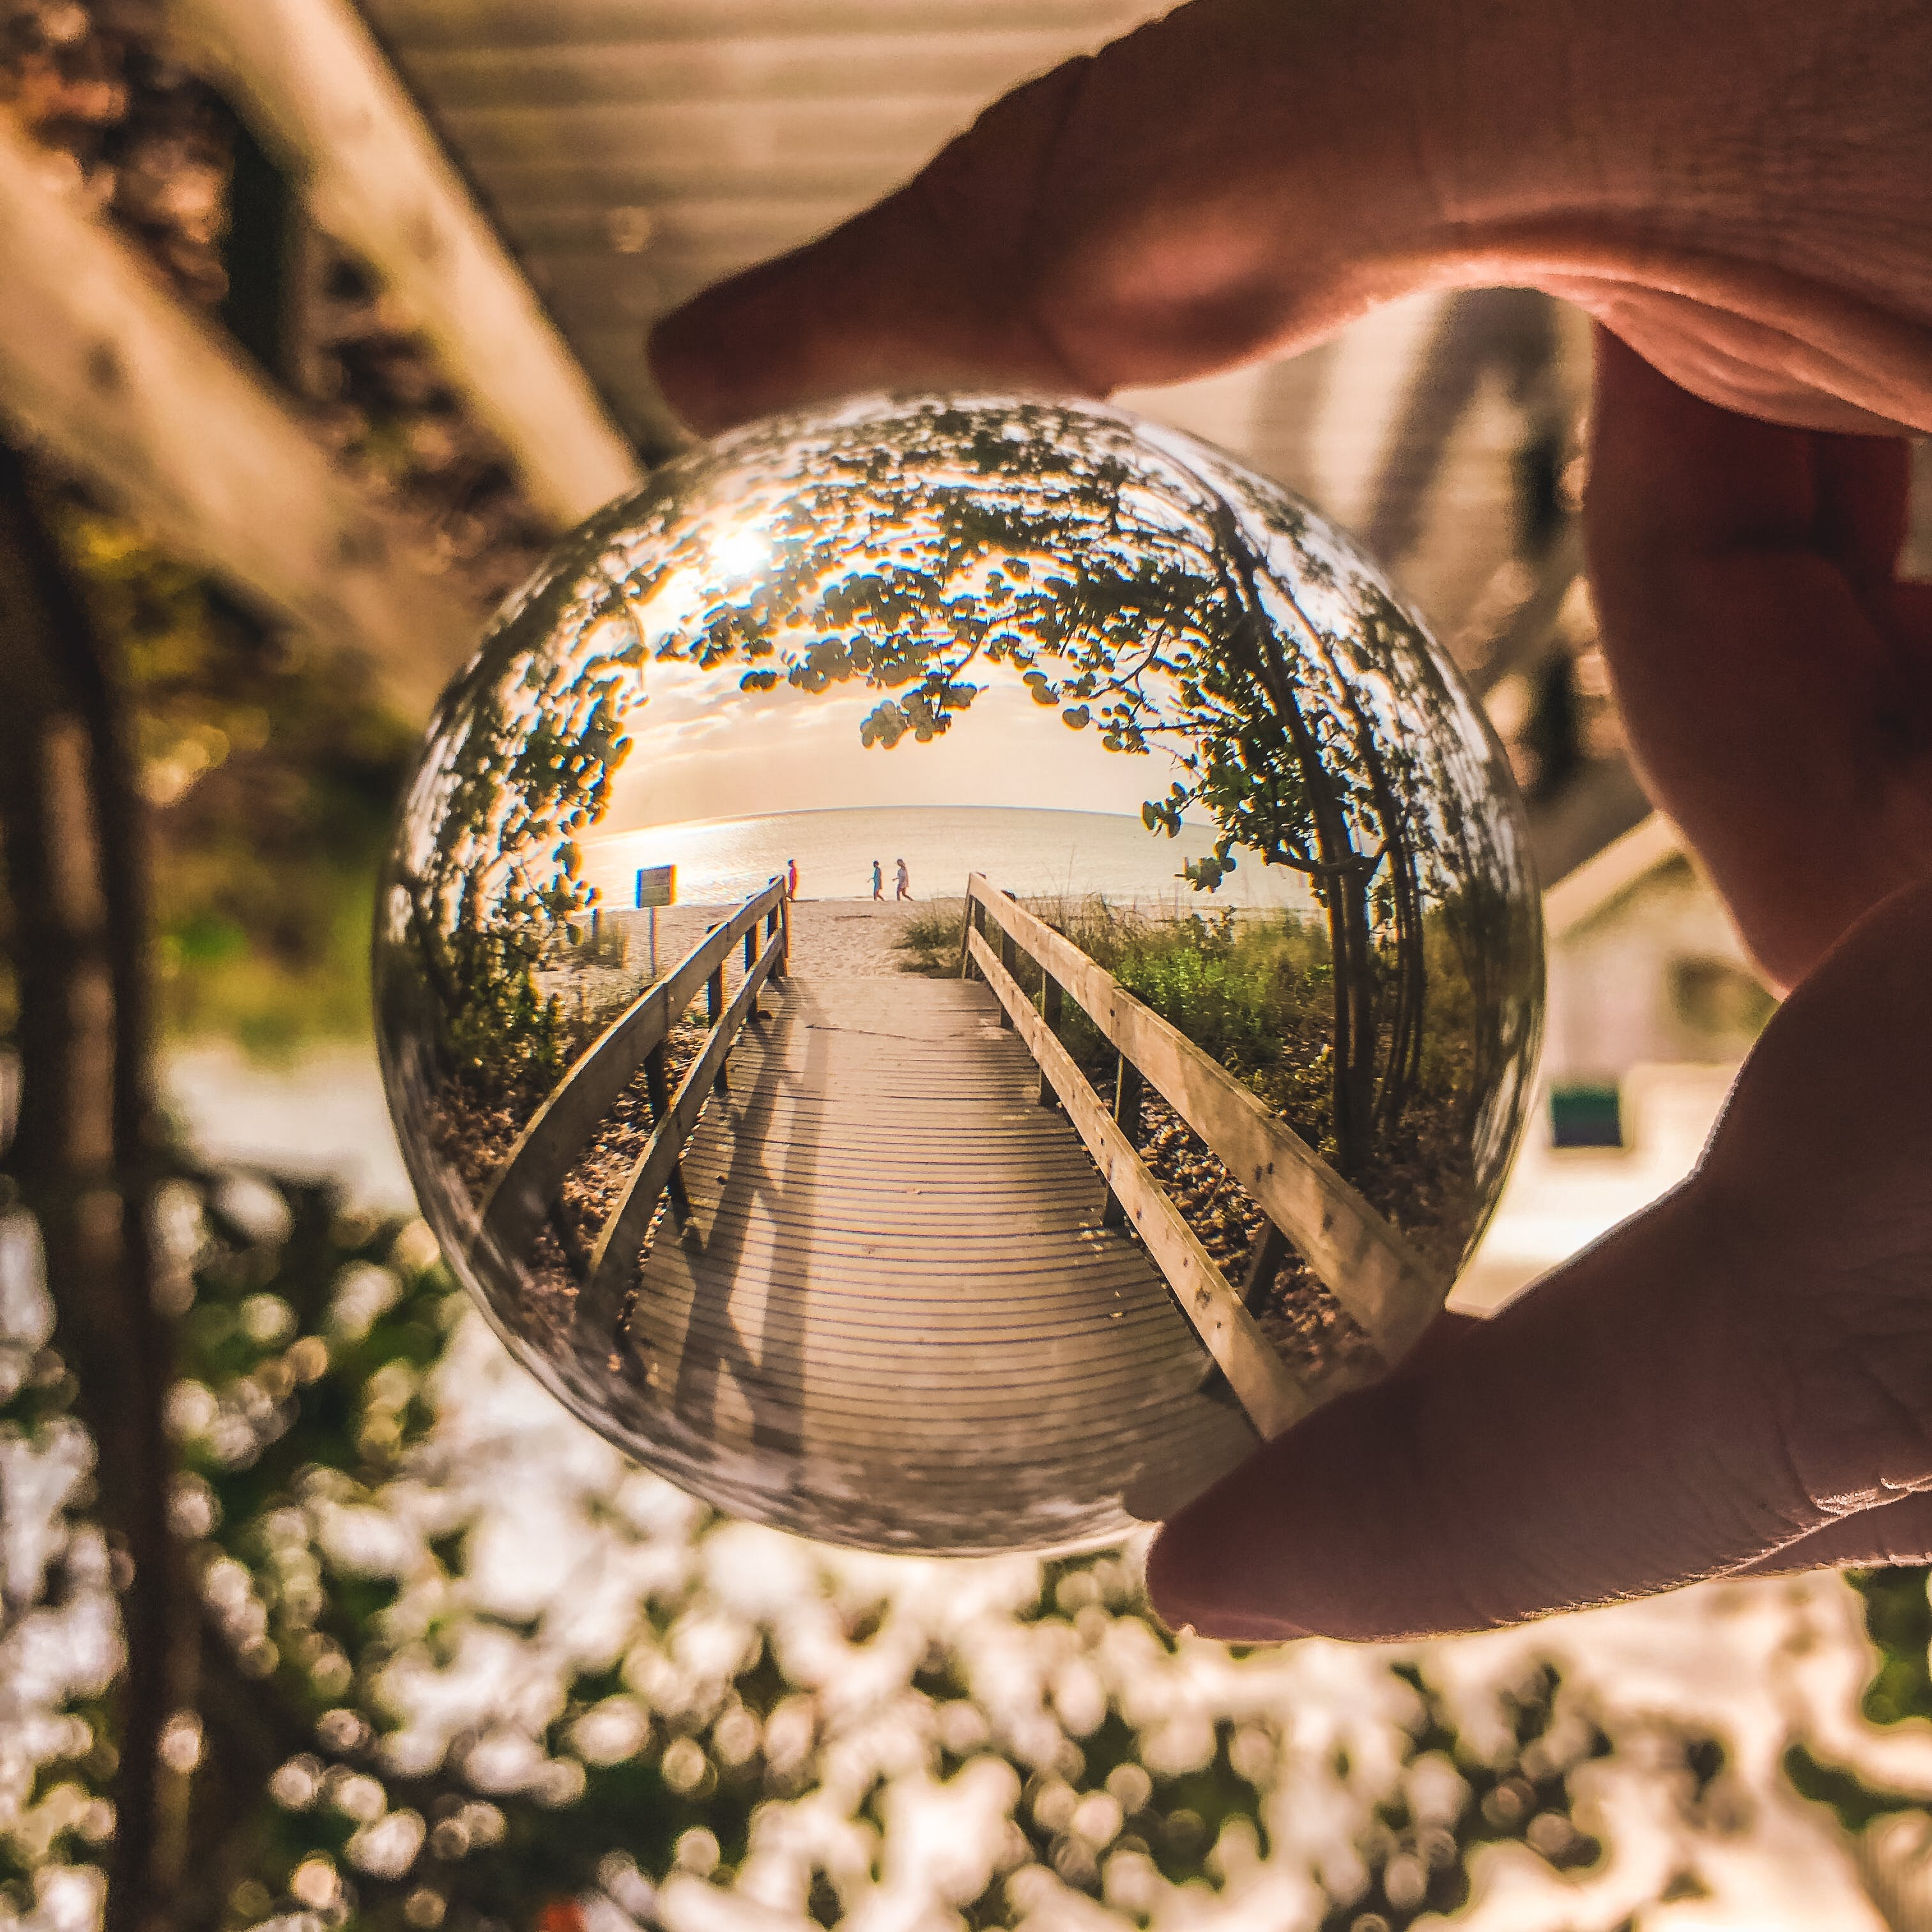 Shallow Focus Photo Of Glass Ball